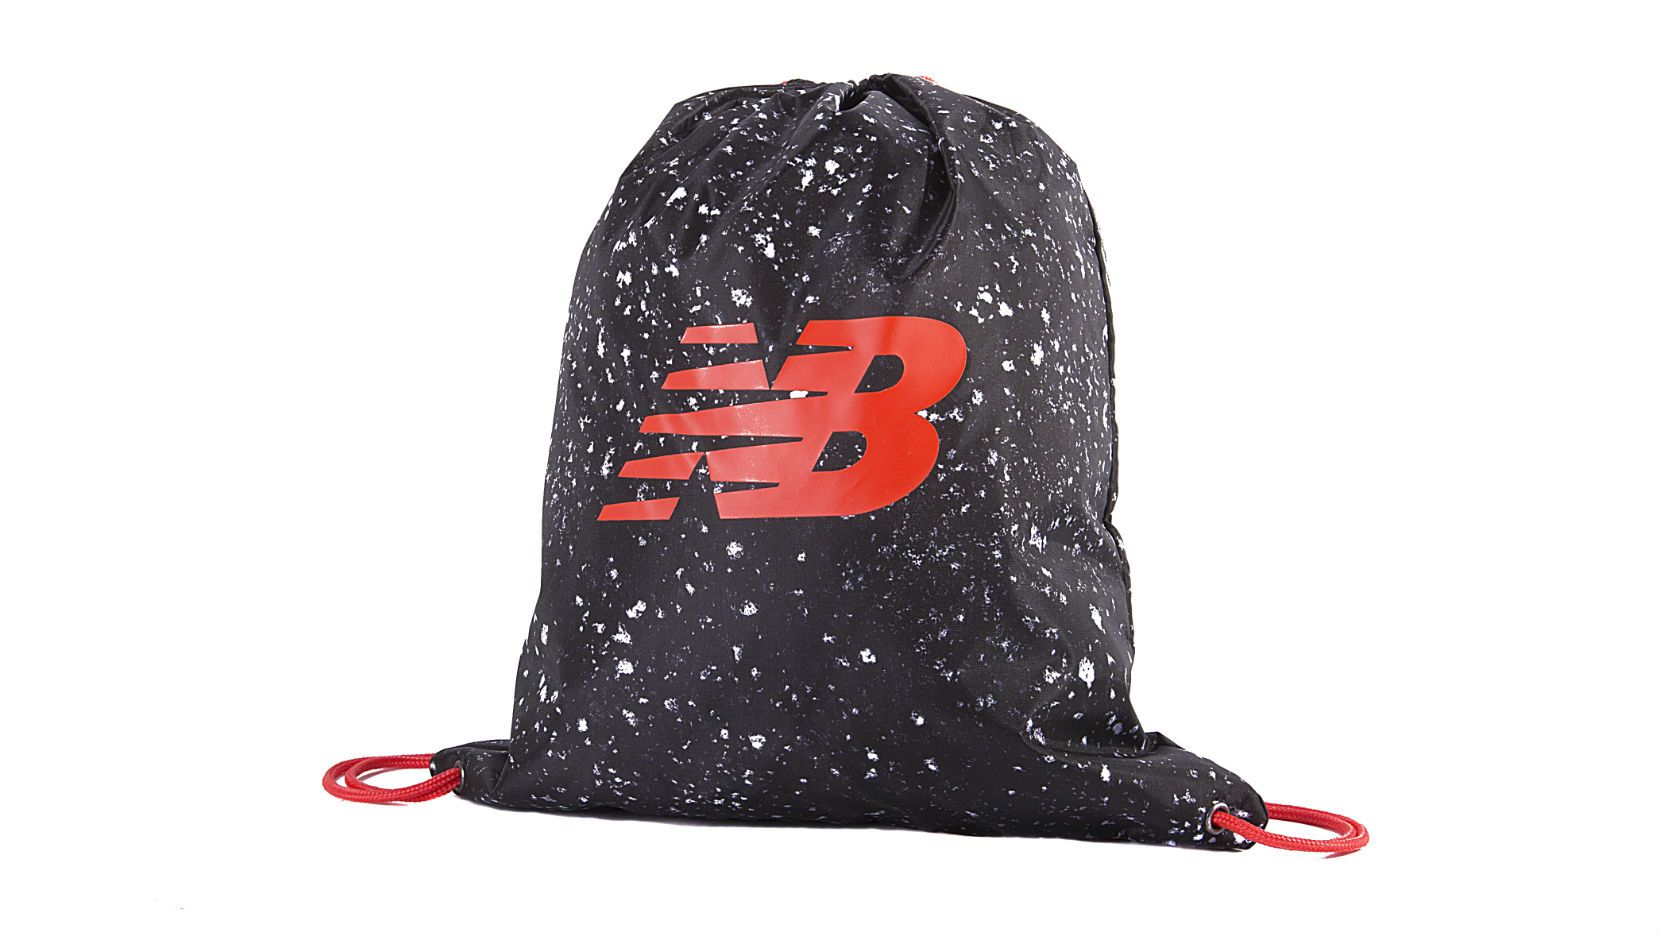 Рюкзак New Balance Cinch Sack от New Balance